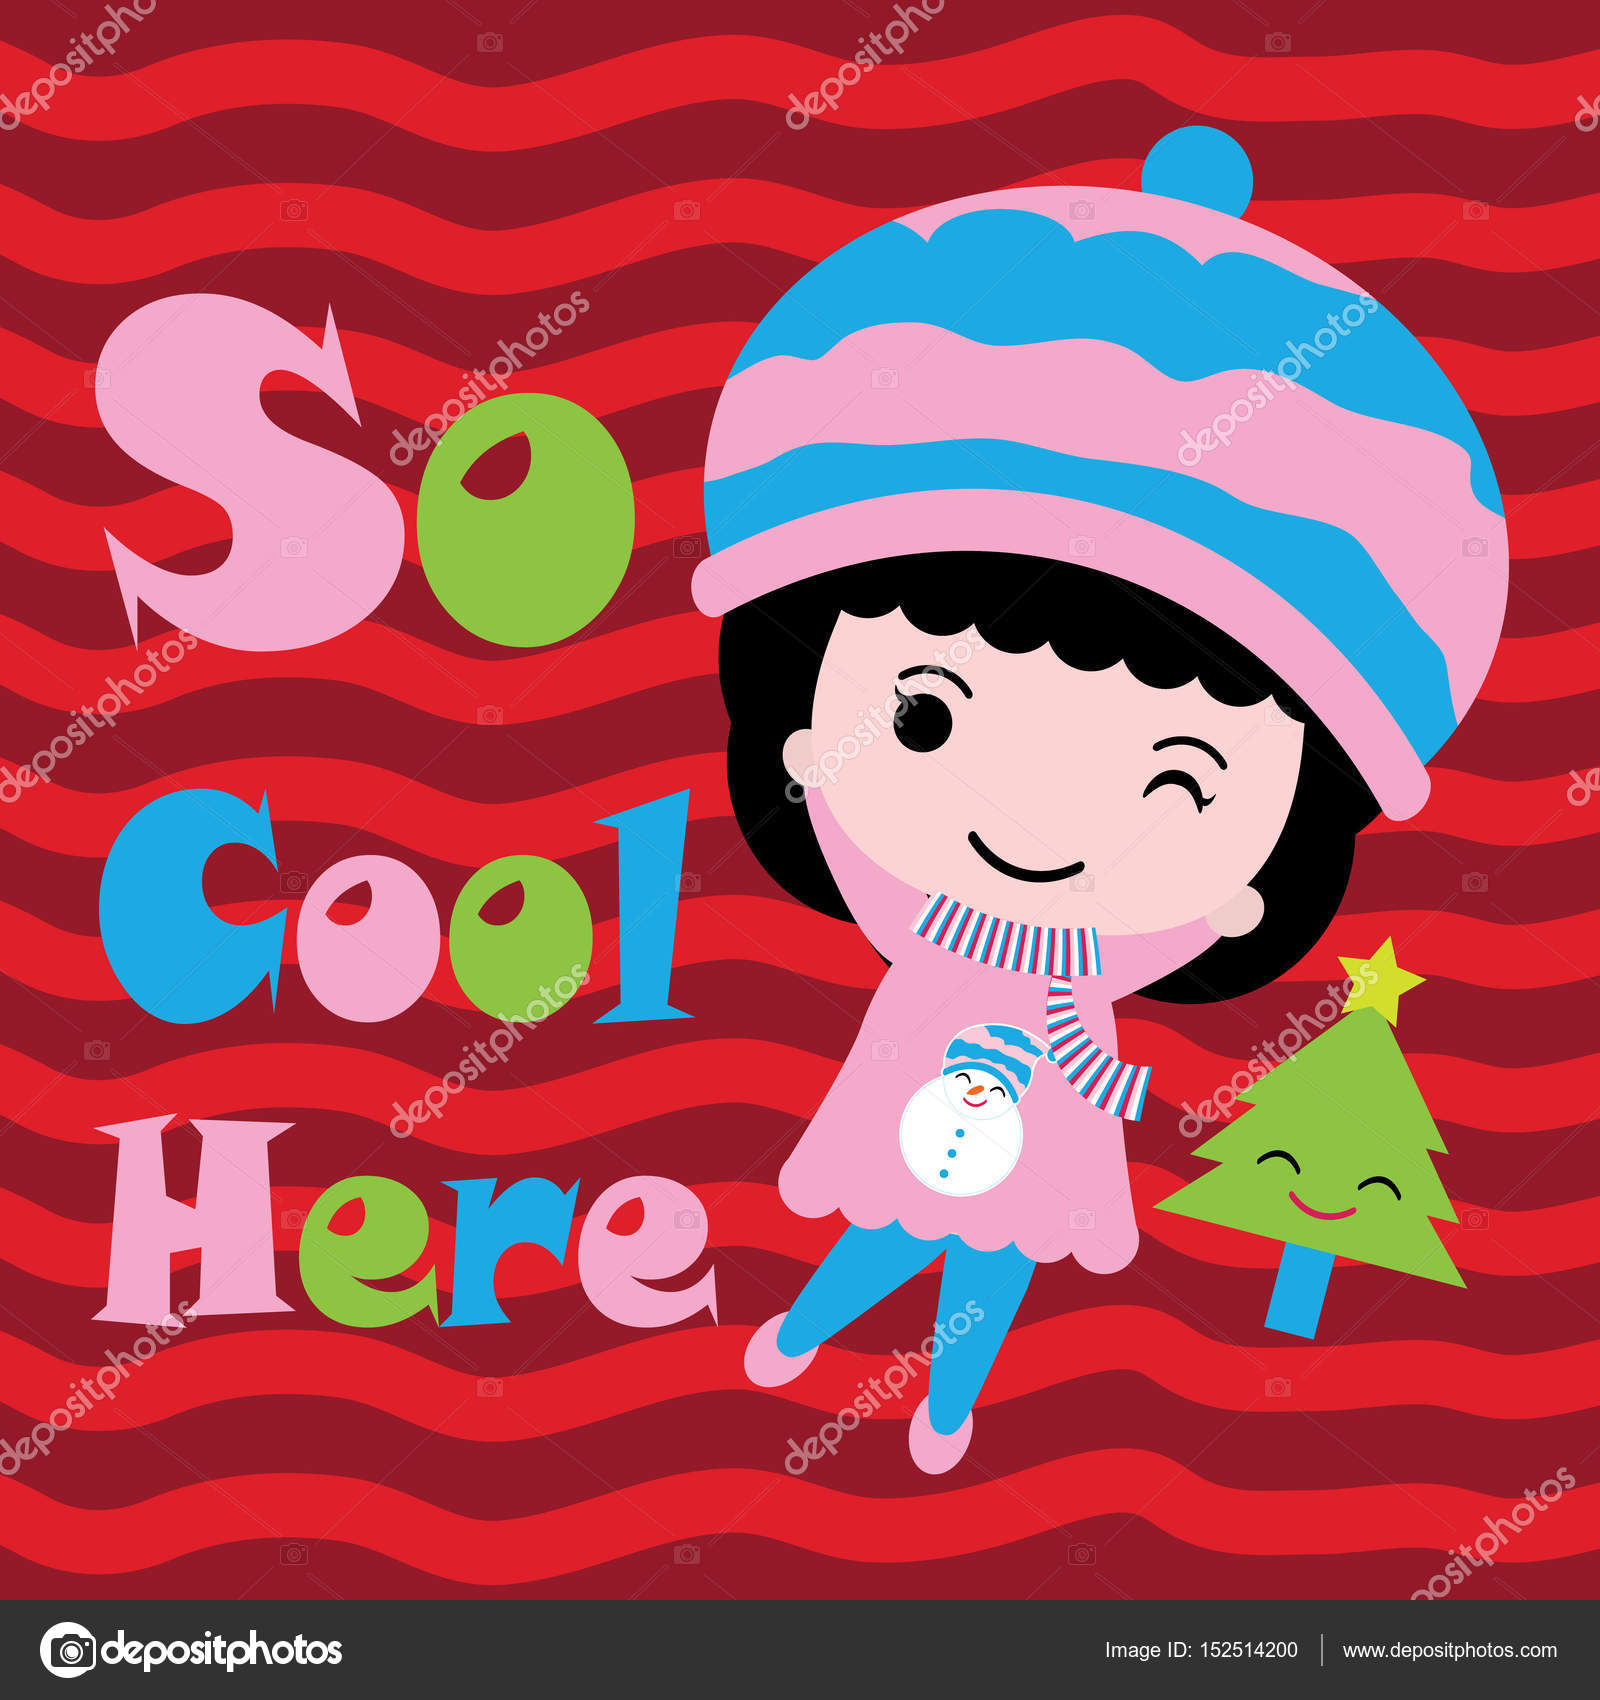 Cute Girl And Xmas Tree On Red Background Vector Cartoon Xmas Postcard Wallpaper And Greeting Card Stock Vector C Mommy05 152514200